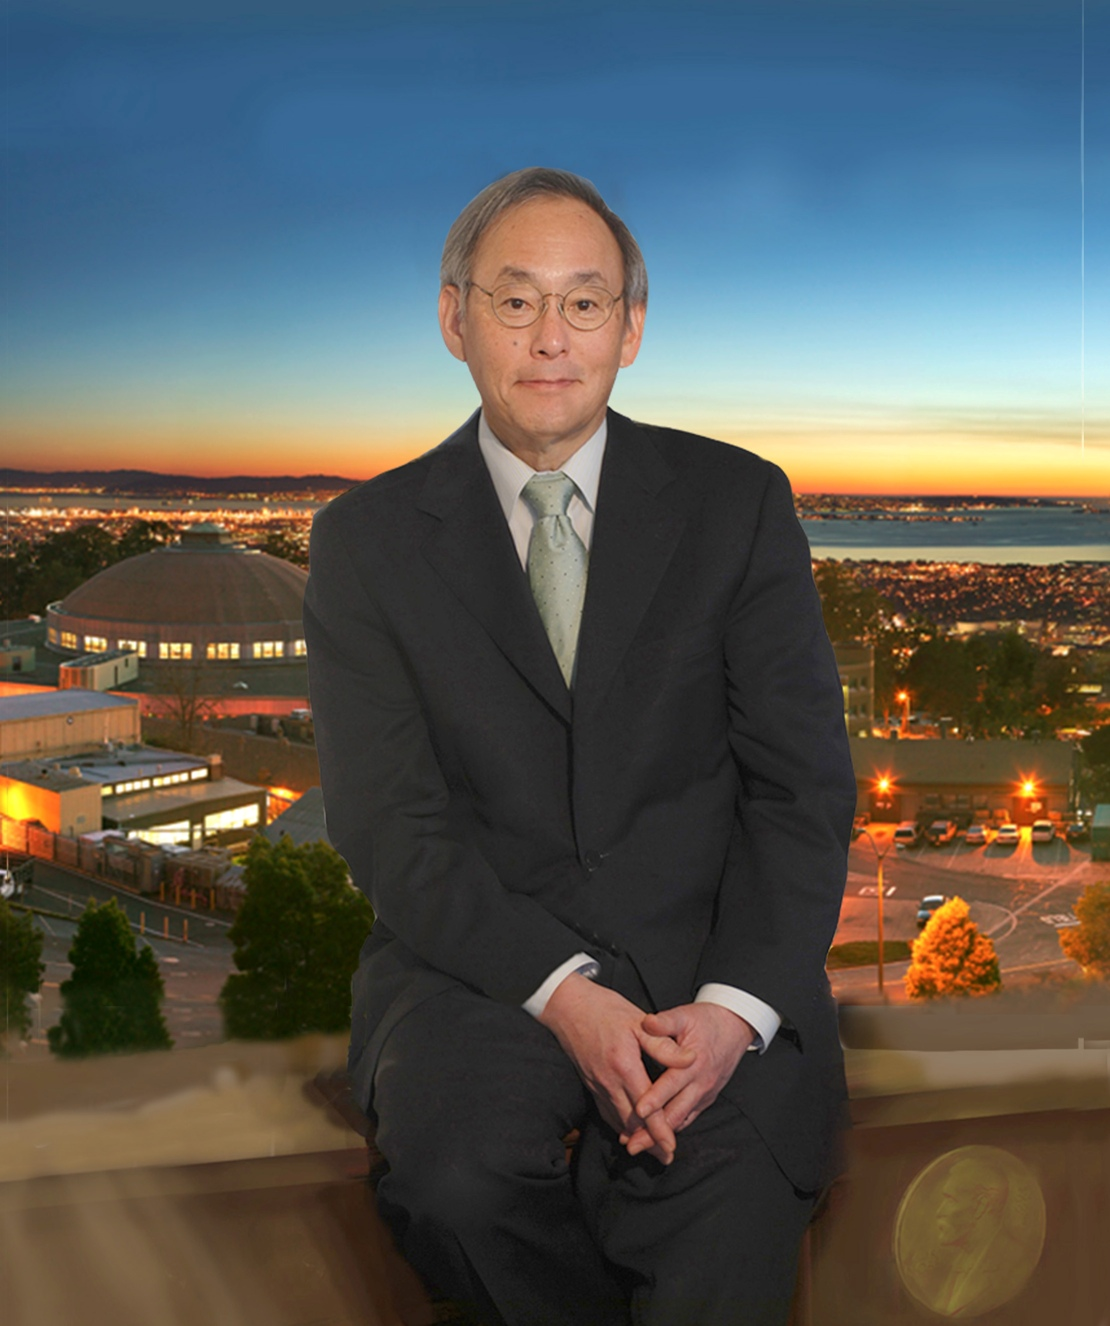 Former U.S. Energy Secretary Dr. Steven Chu Rejoins Board of Trustees of Blum Center for Developing Economies at University of California, Berkeley